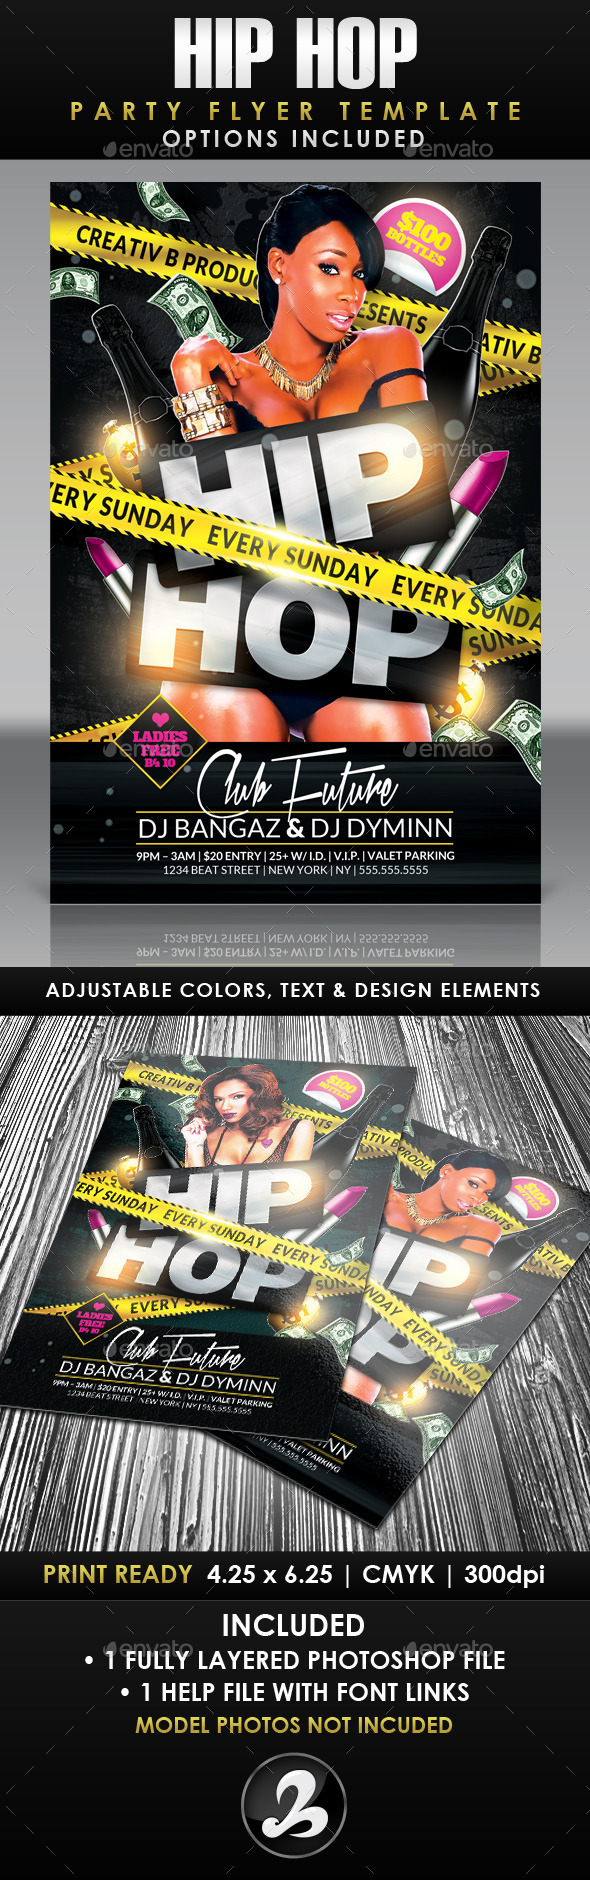 Hip Hop Party Flyer Template 2 - Events Flyers